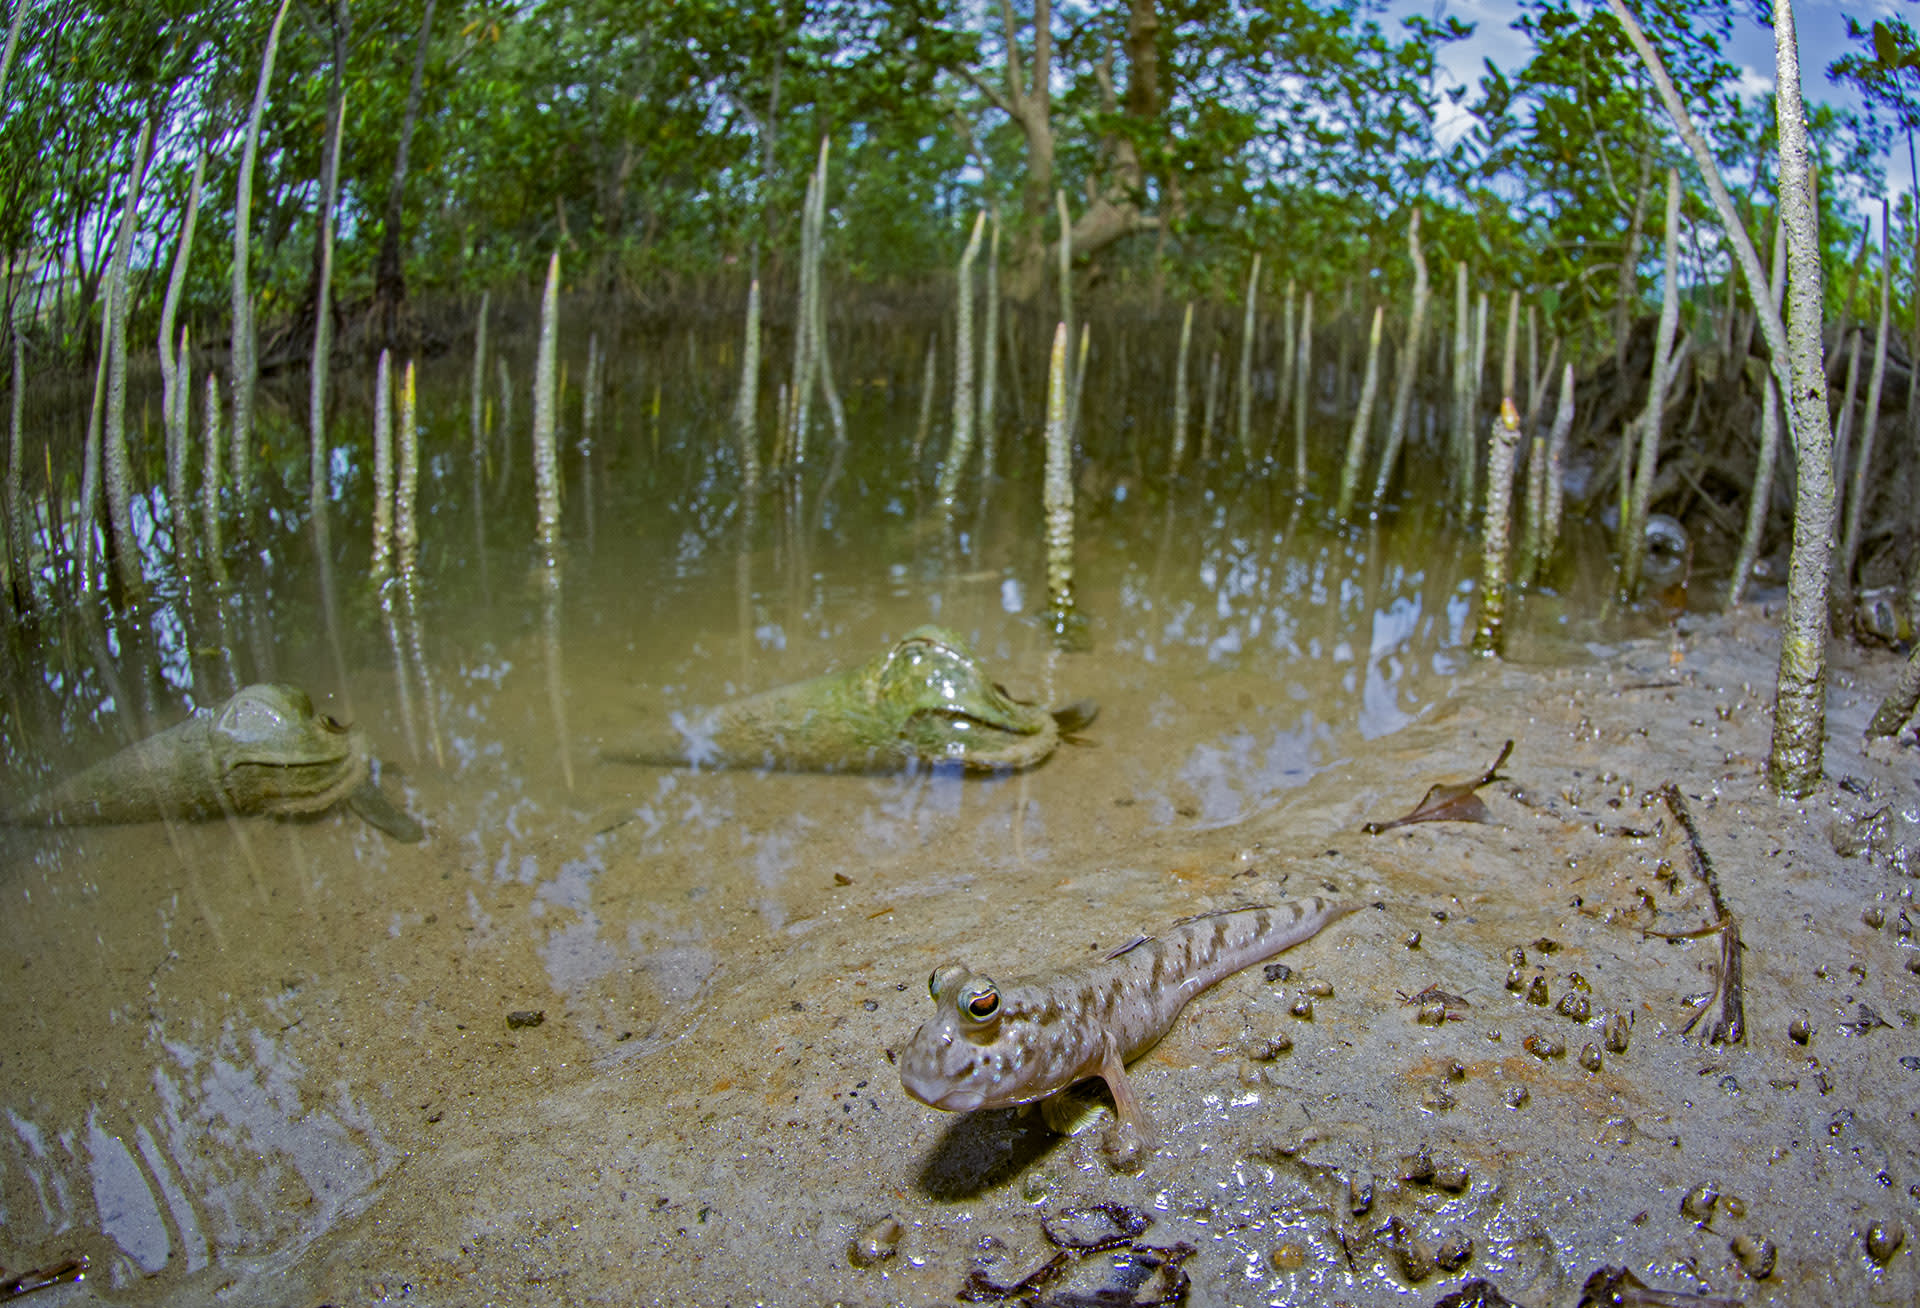 """""""Very little is known about the small creatures that thrive in the Sundarbans"""", says Bhattacharyya. Various components of this mangrove delta make these creatures diverse and complex. Numerous kinds of molluscs inhabit tidal flats and backwater inlets during low tide. When the tide rises, they are seen on tree trunks. These include gastropods such as Telescopium (seen in the background). Amphibious fish like mudskippers (foreground), which belong to the goby family and are potential bio-indicators of mangrove forests and coastal waters, i.e. they reveal the pollution levels of a habitat. These gobies can breathe both underwater and on land. Their tissues can absorb and accumulate traces of pollution emitted from various sources in intertidal environments. Mudskippers can accumulate toxic chemicals in their skin, gills, and digestive system. In the Sundarbans researchers have monitored them to investigate copper, iron, zinc, and lead pollution levels."""